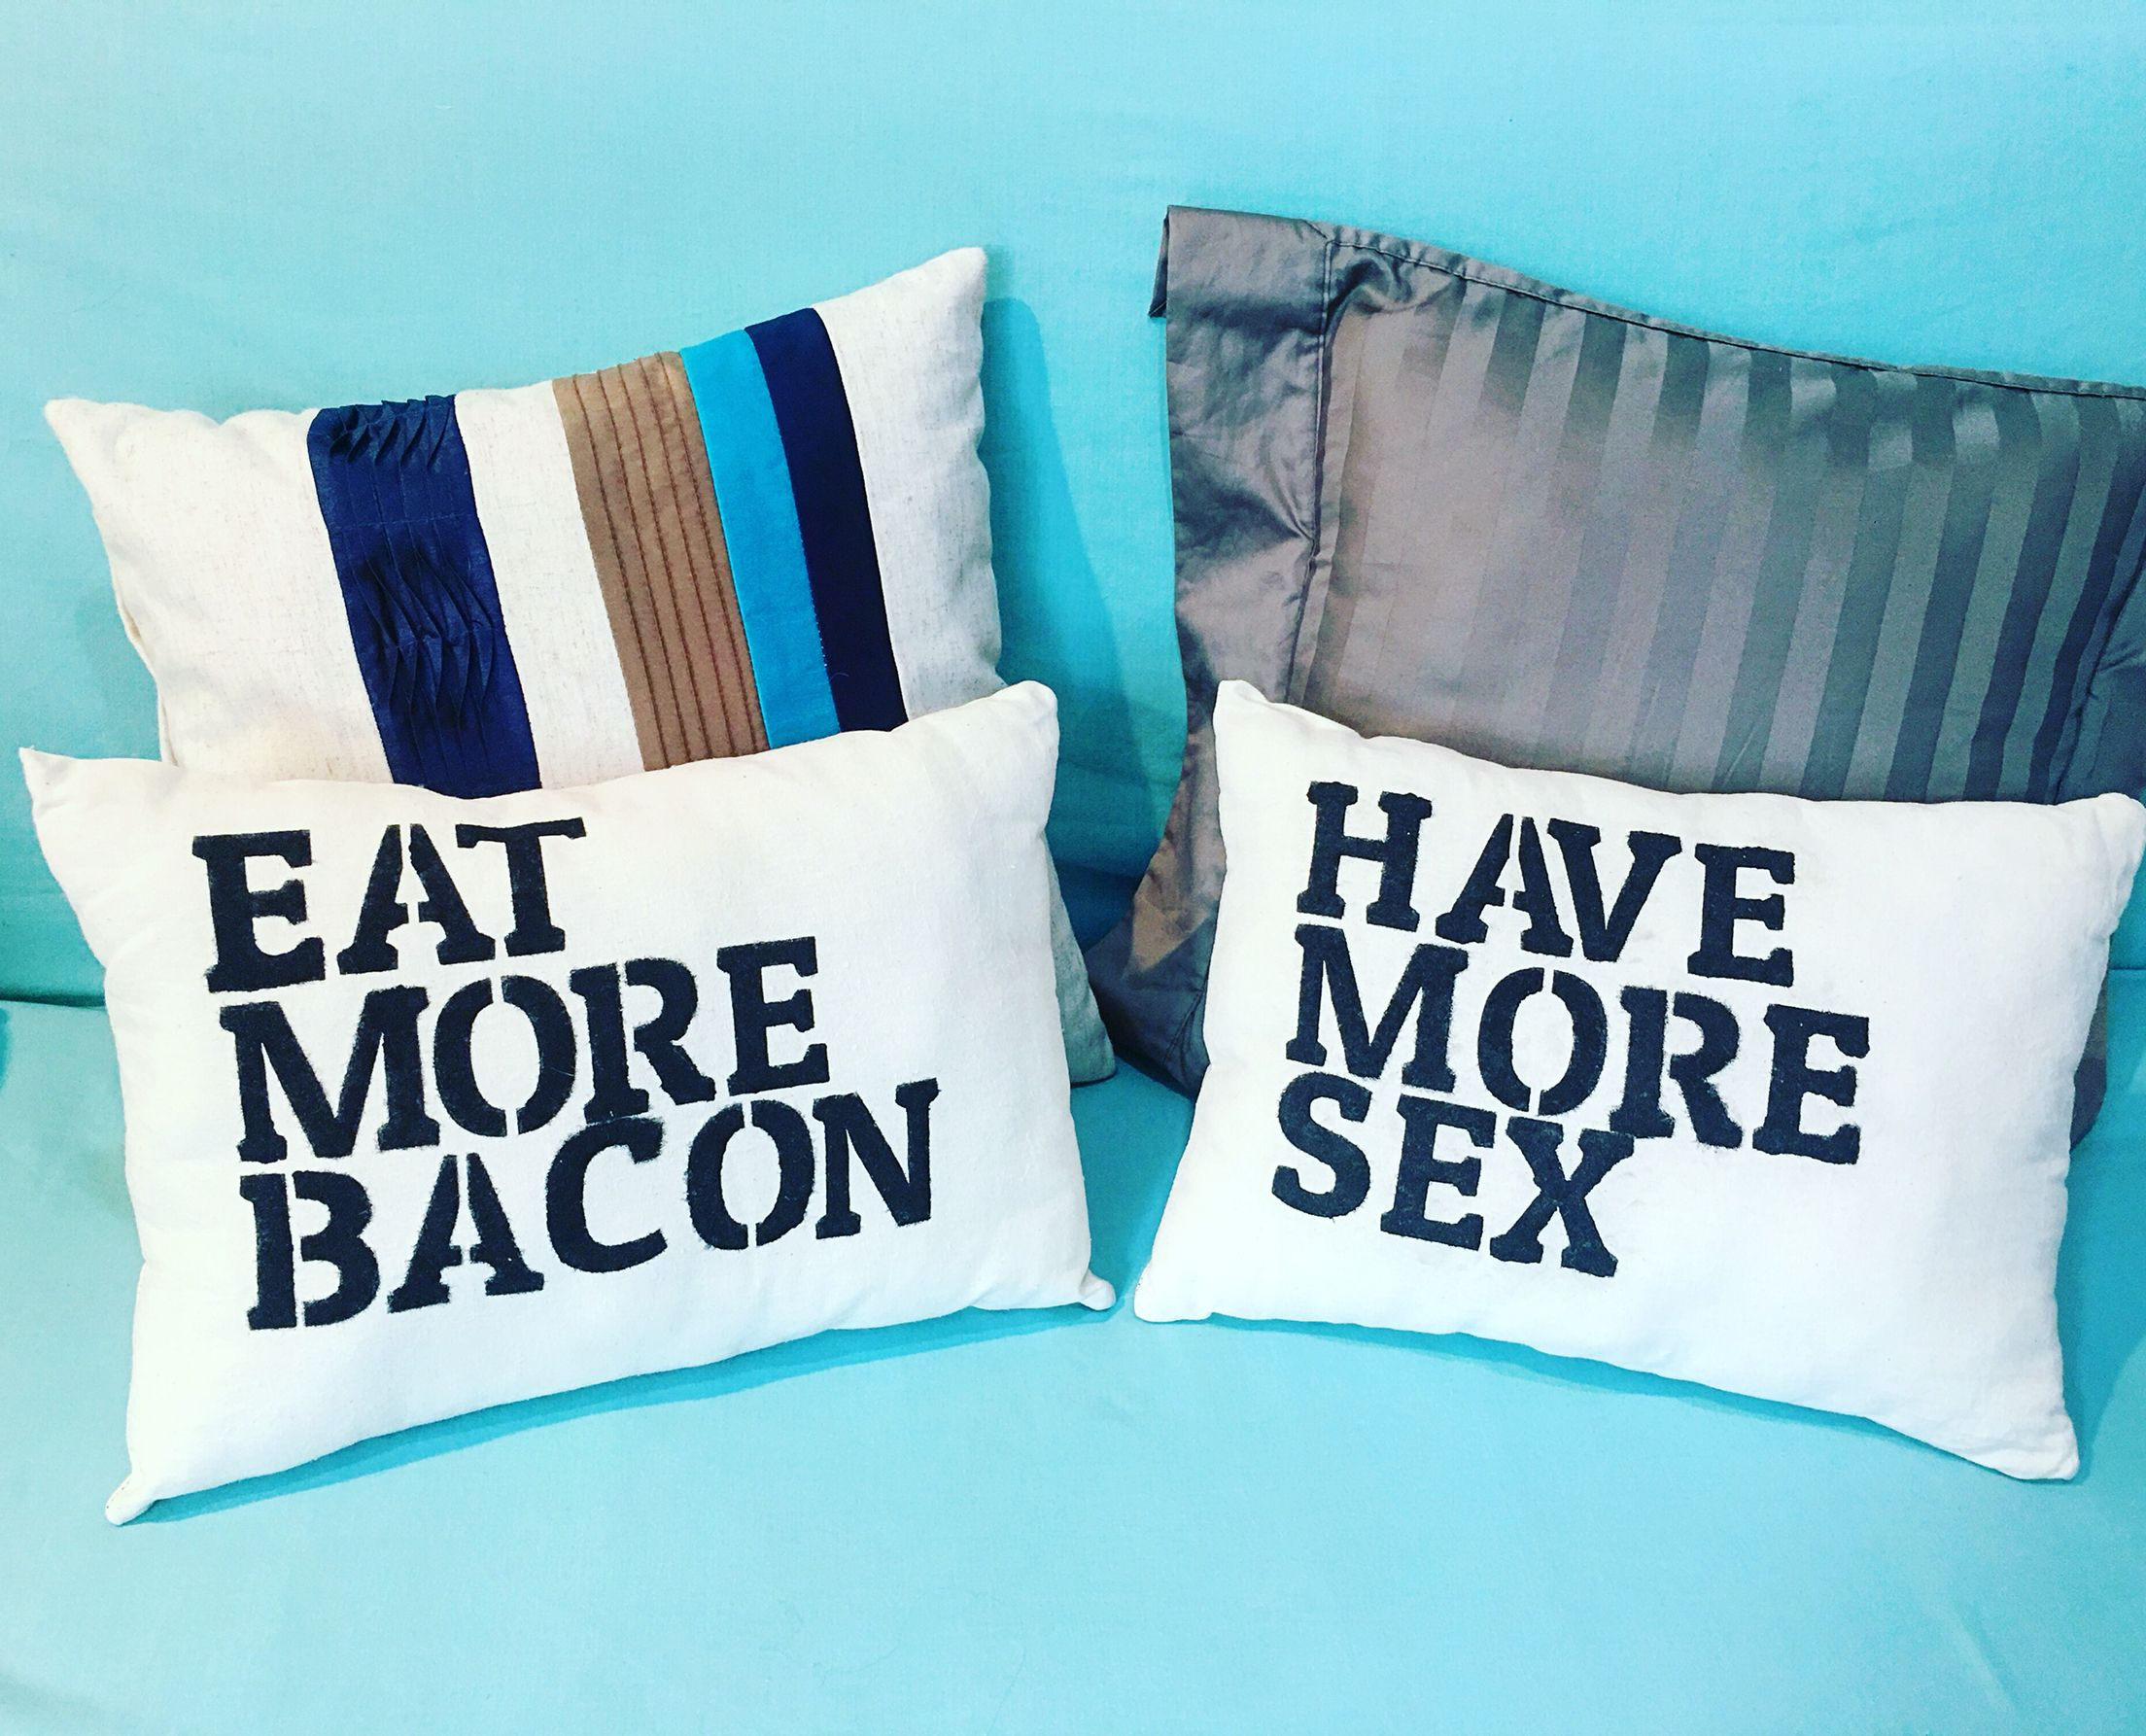 The key to happiness. We can add more cheese too! | Par de cojines tipo stencil $350.00 MX #EatMoreBacon #HaveMoreSex #HomeDecor #FunQuotes